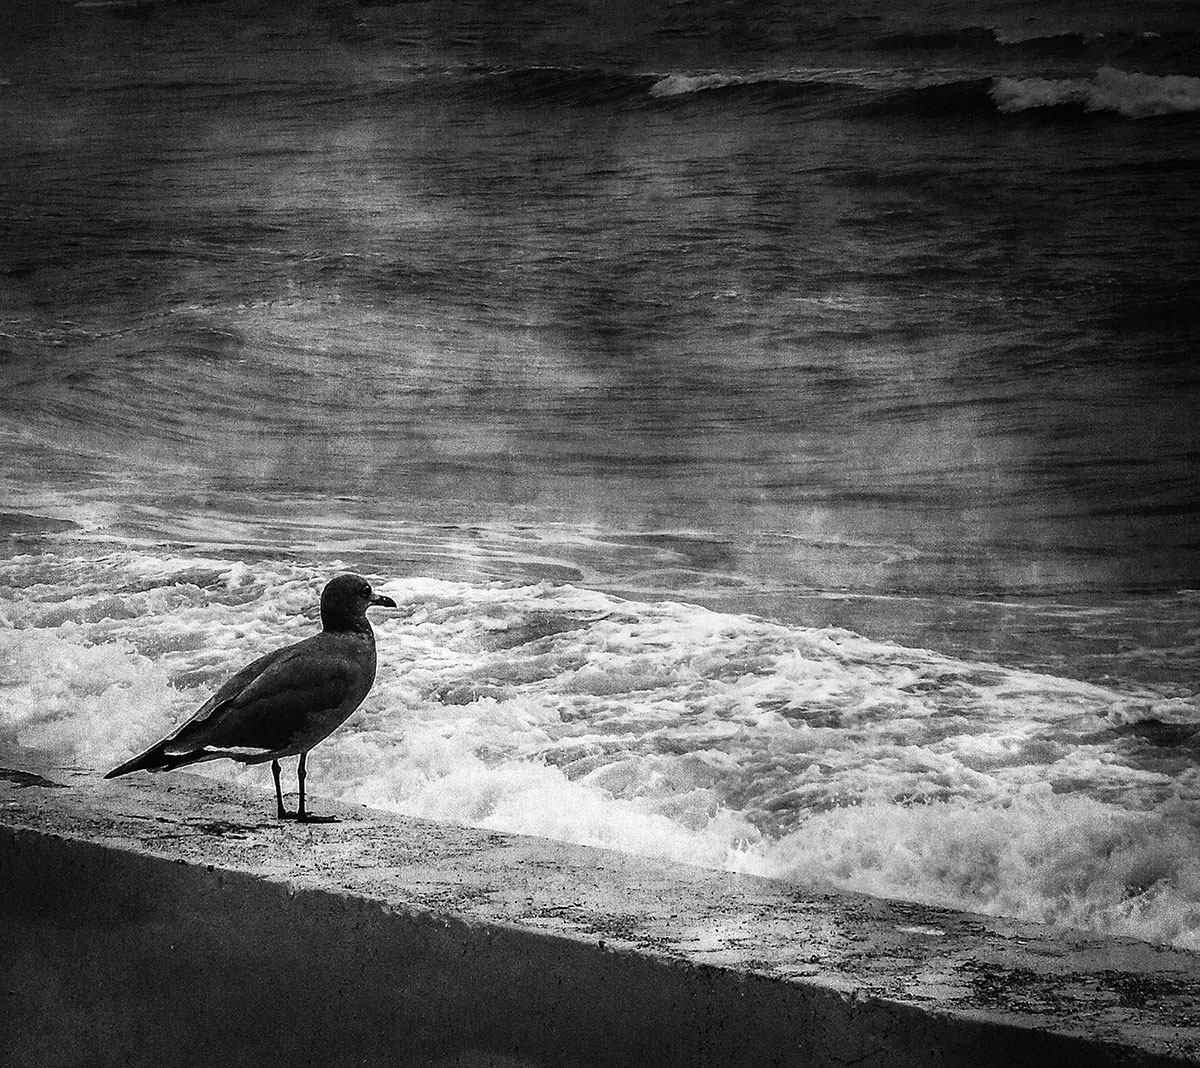 Photo black & white from Natalia Ciric for the song See the Sea from Samuel Christen